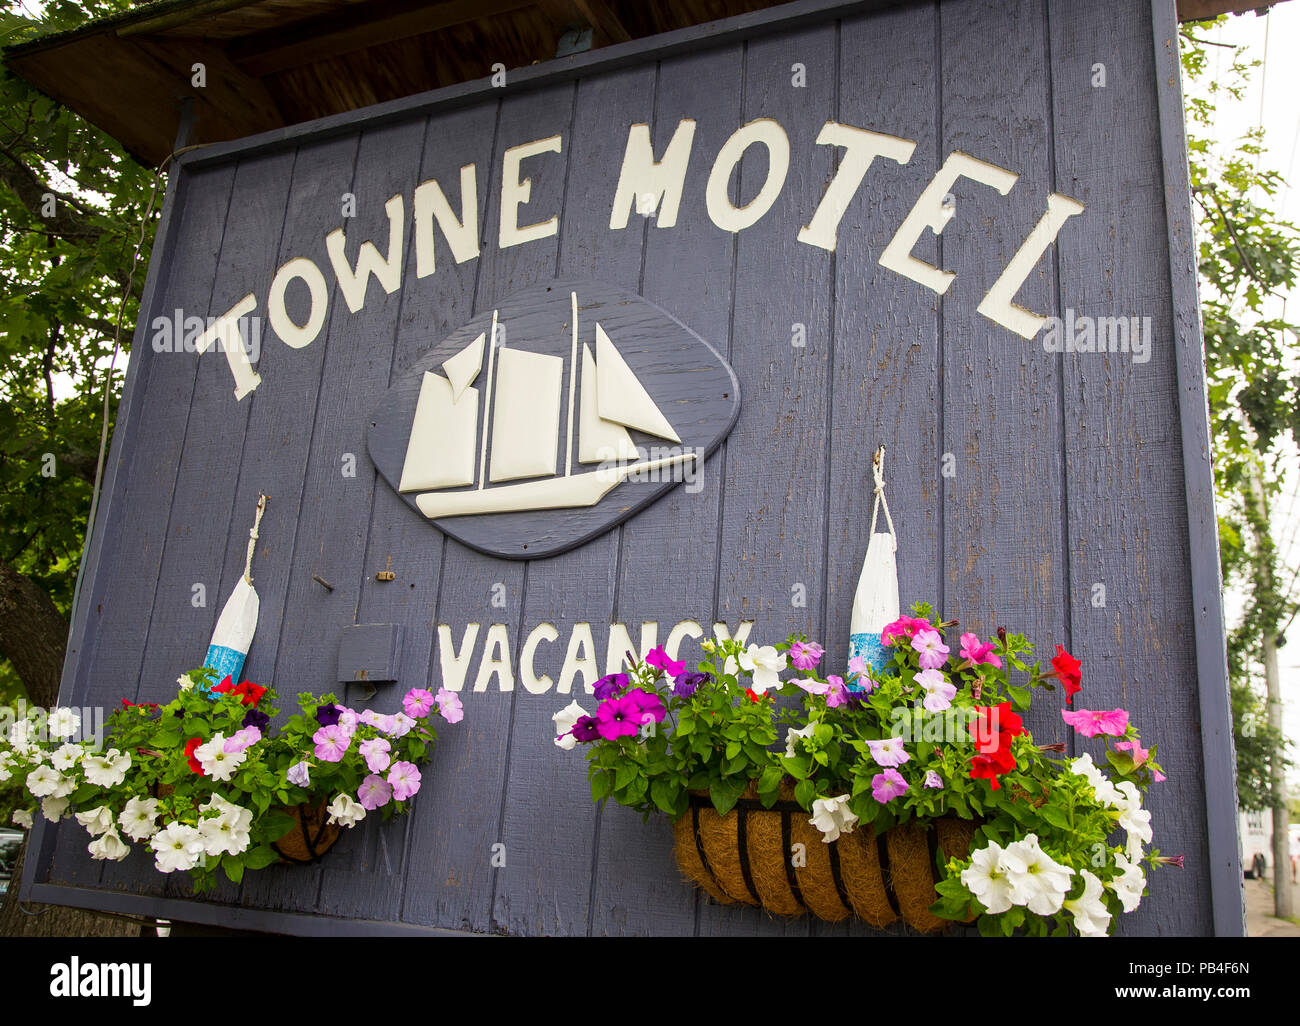 Sign showing a vacancy at a motel in Camden, ME - Stock Image